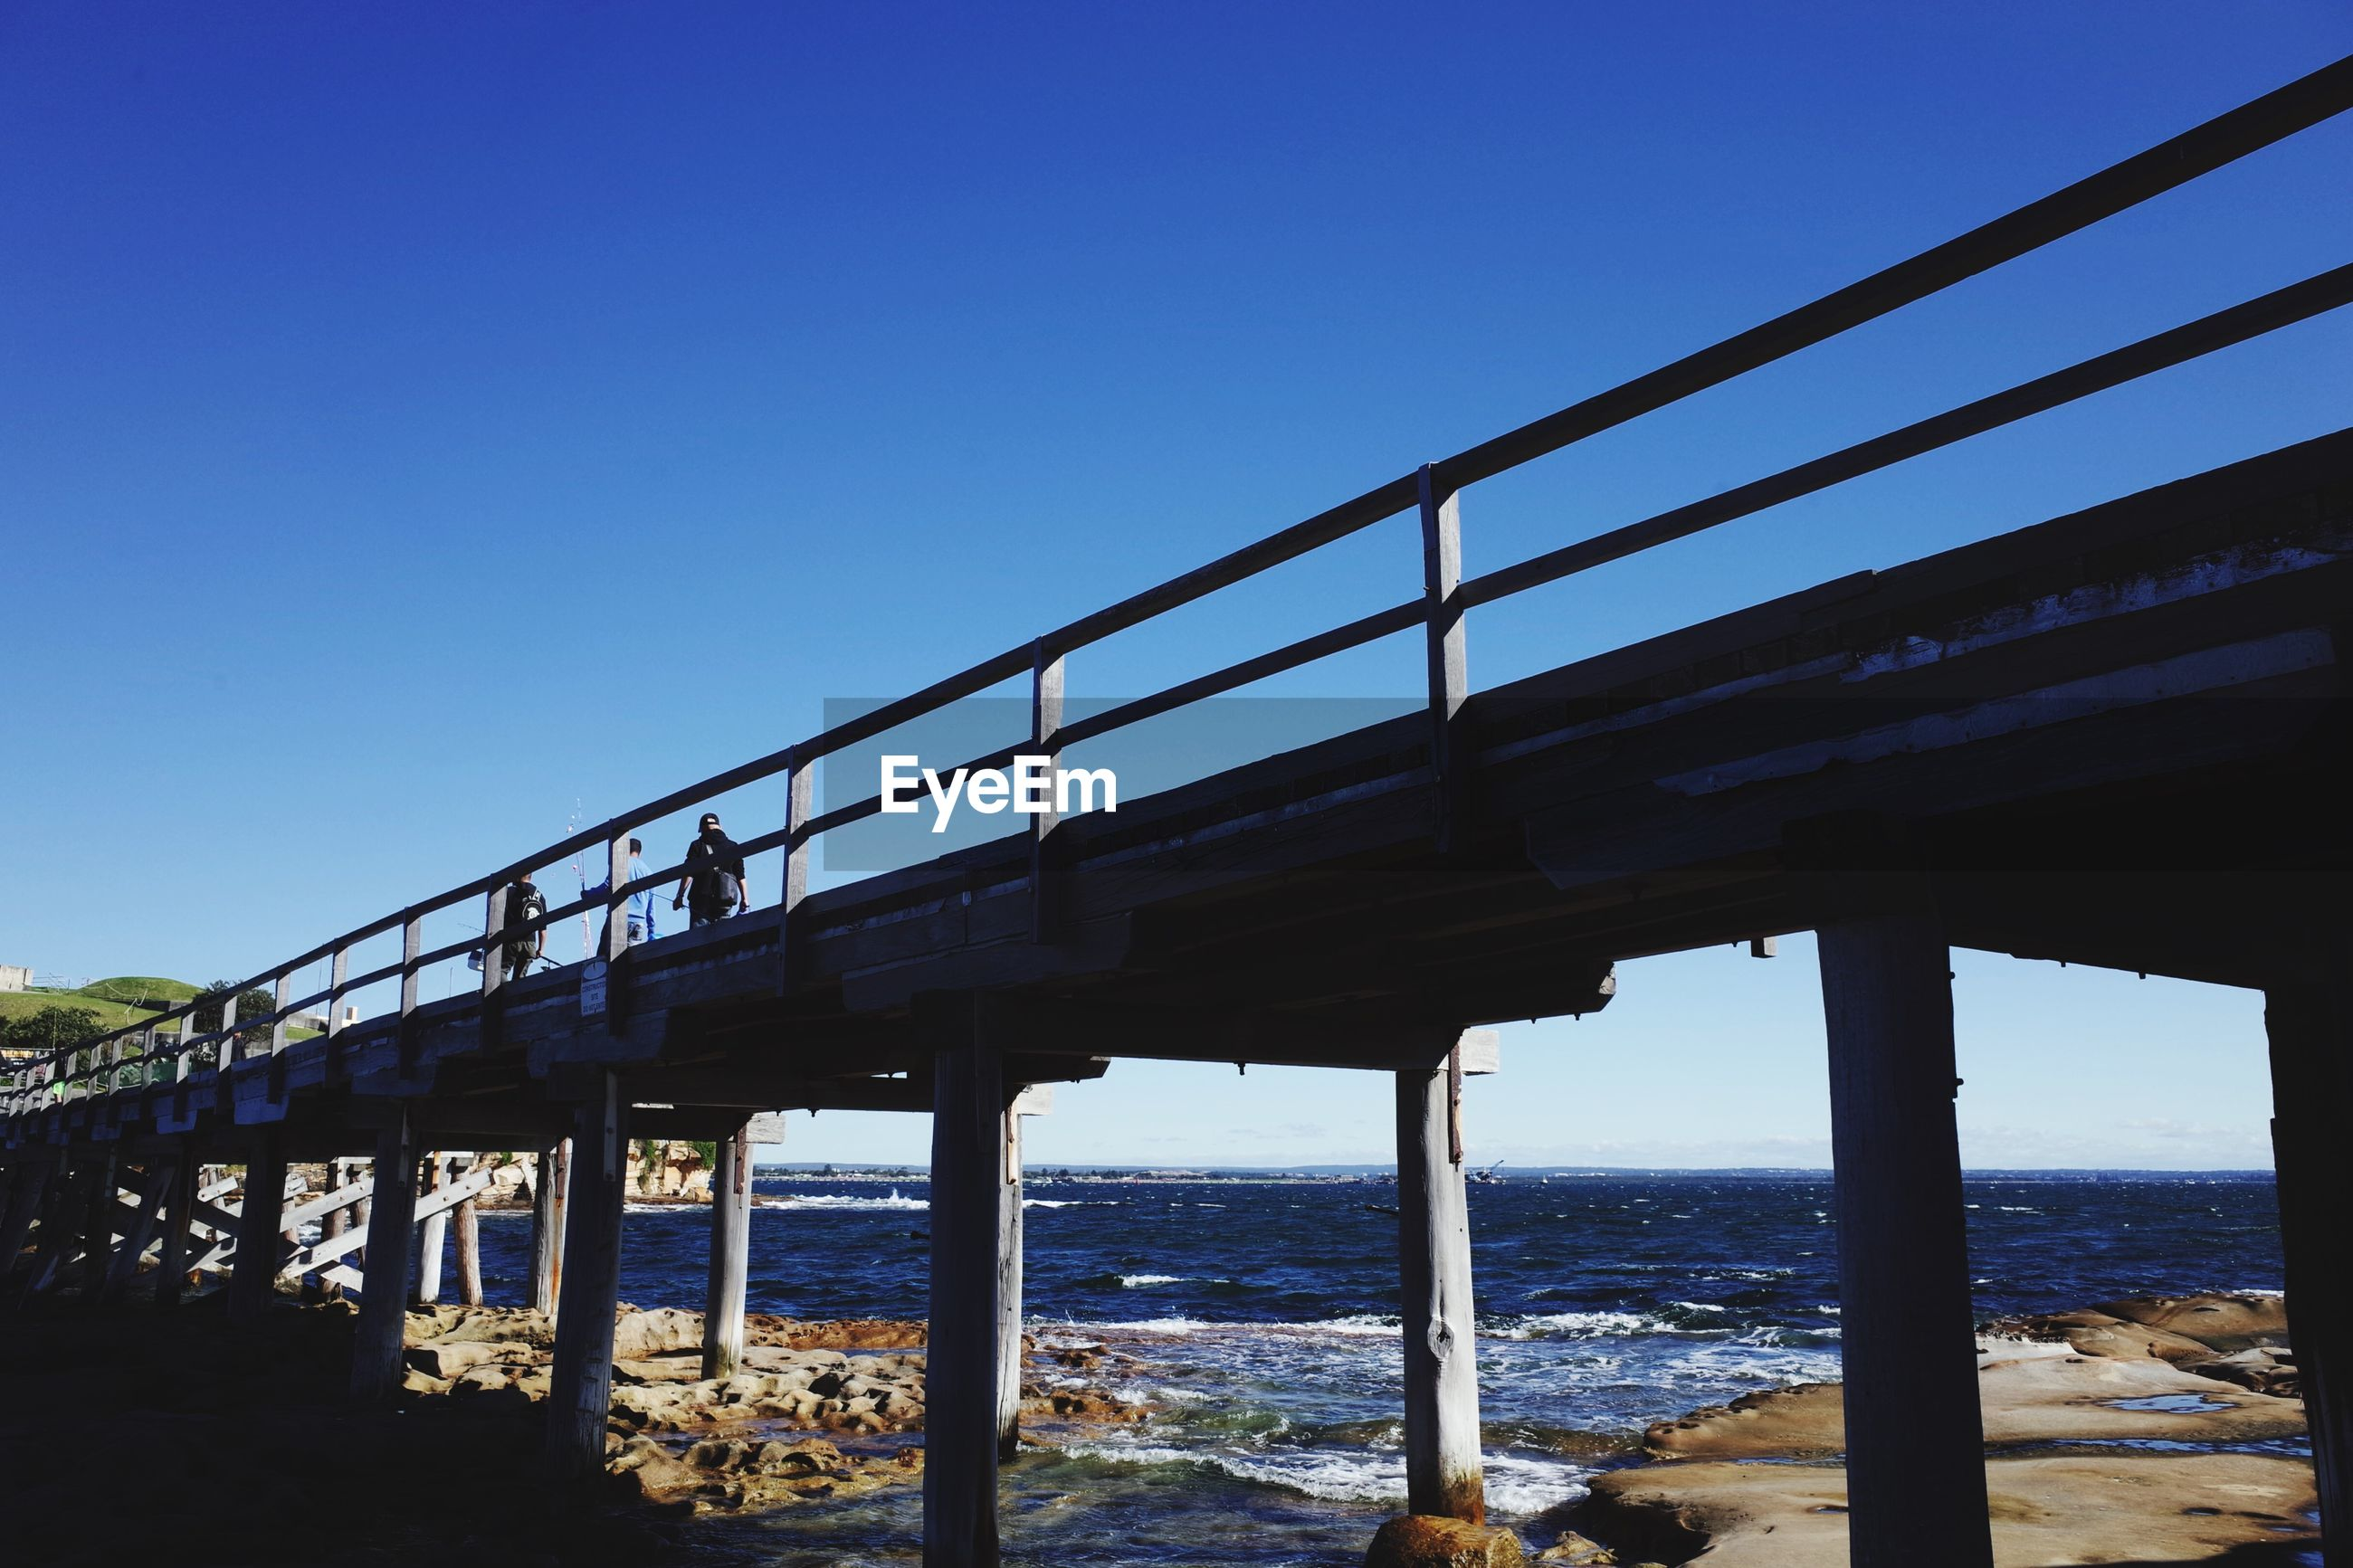 clear sky, water, connection, sea, bridge - man made structure, built structure, bridge, railing, copy space, blue, transportation, engineering, architecture, horizon over water, sky, tranquility, outdoors, day, tranquil scene, nature